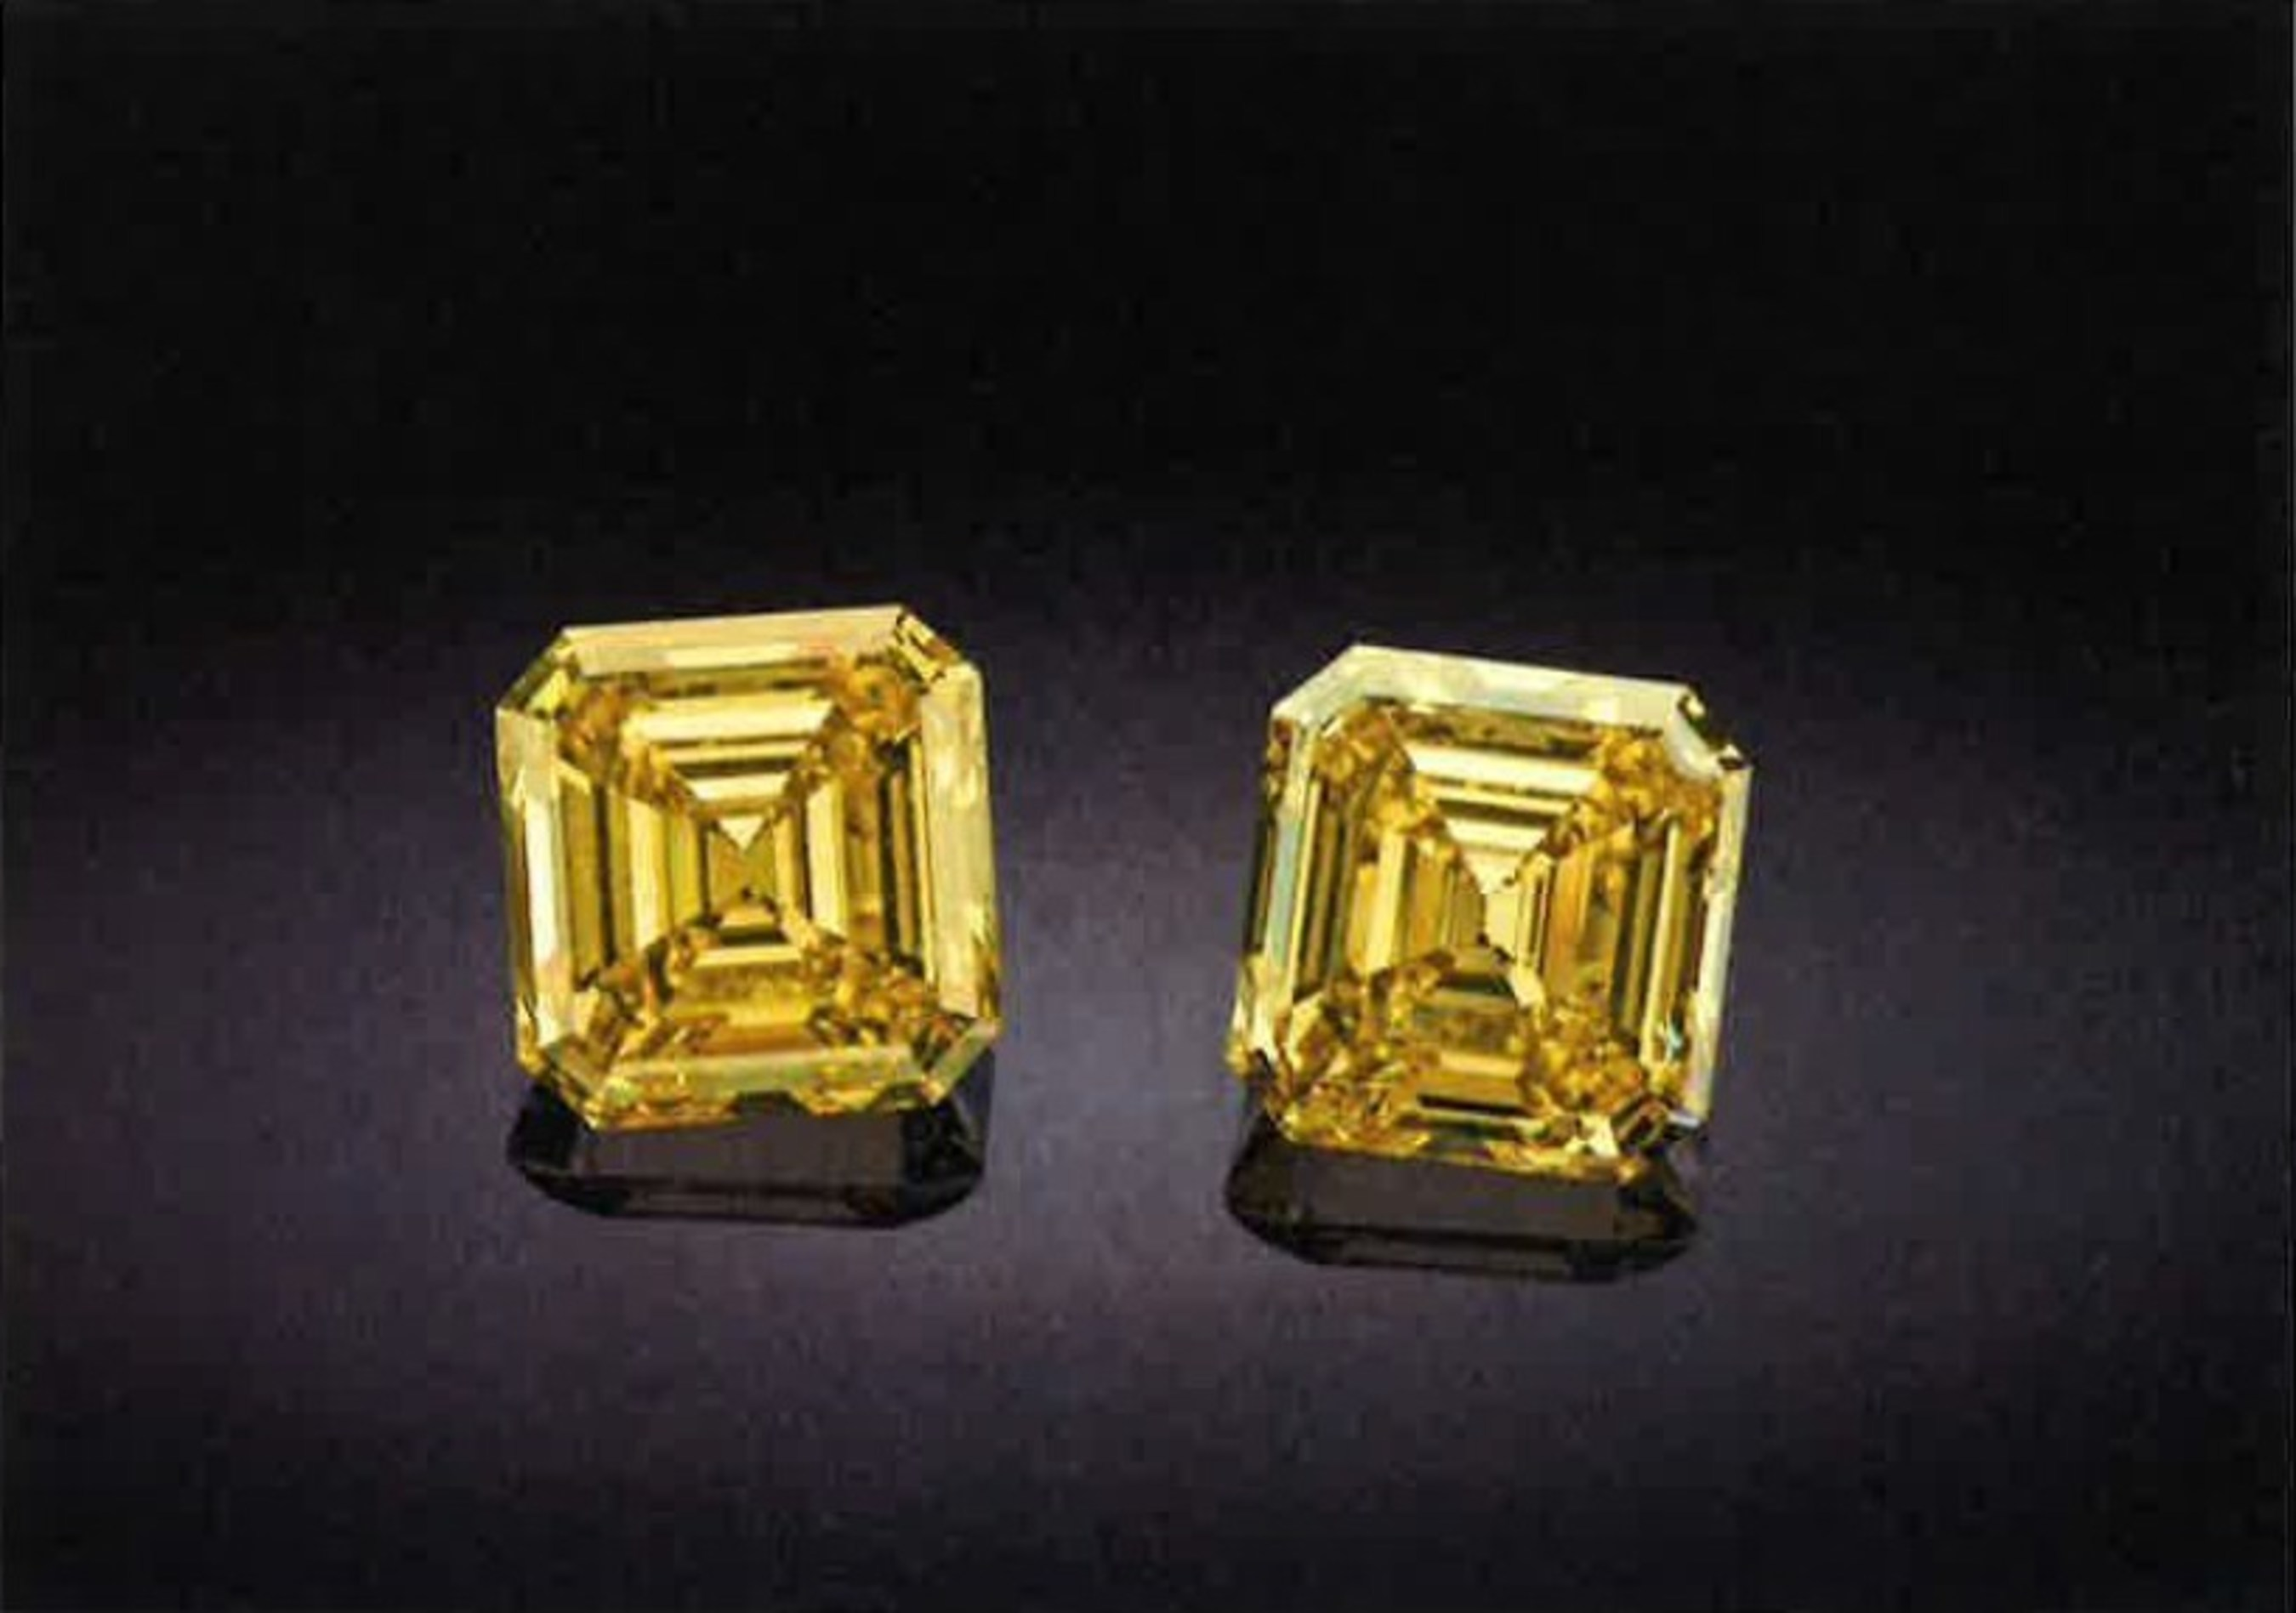 golden diamonds natural the encyclopedia color i origin about diamond type langerman what of jubilee